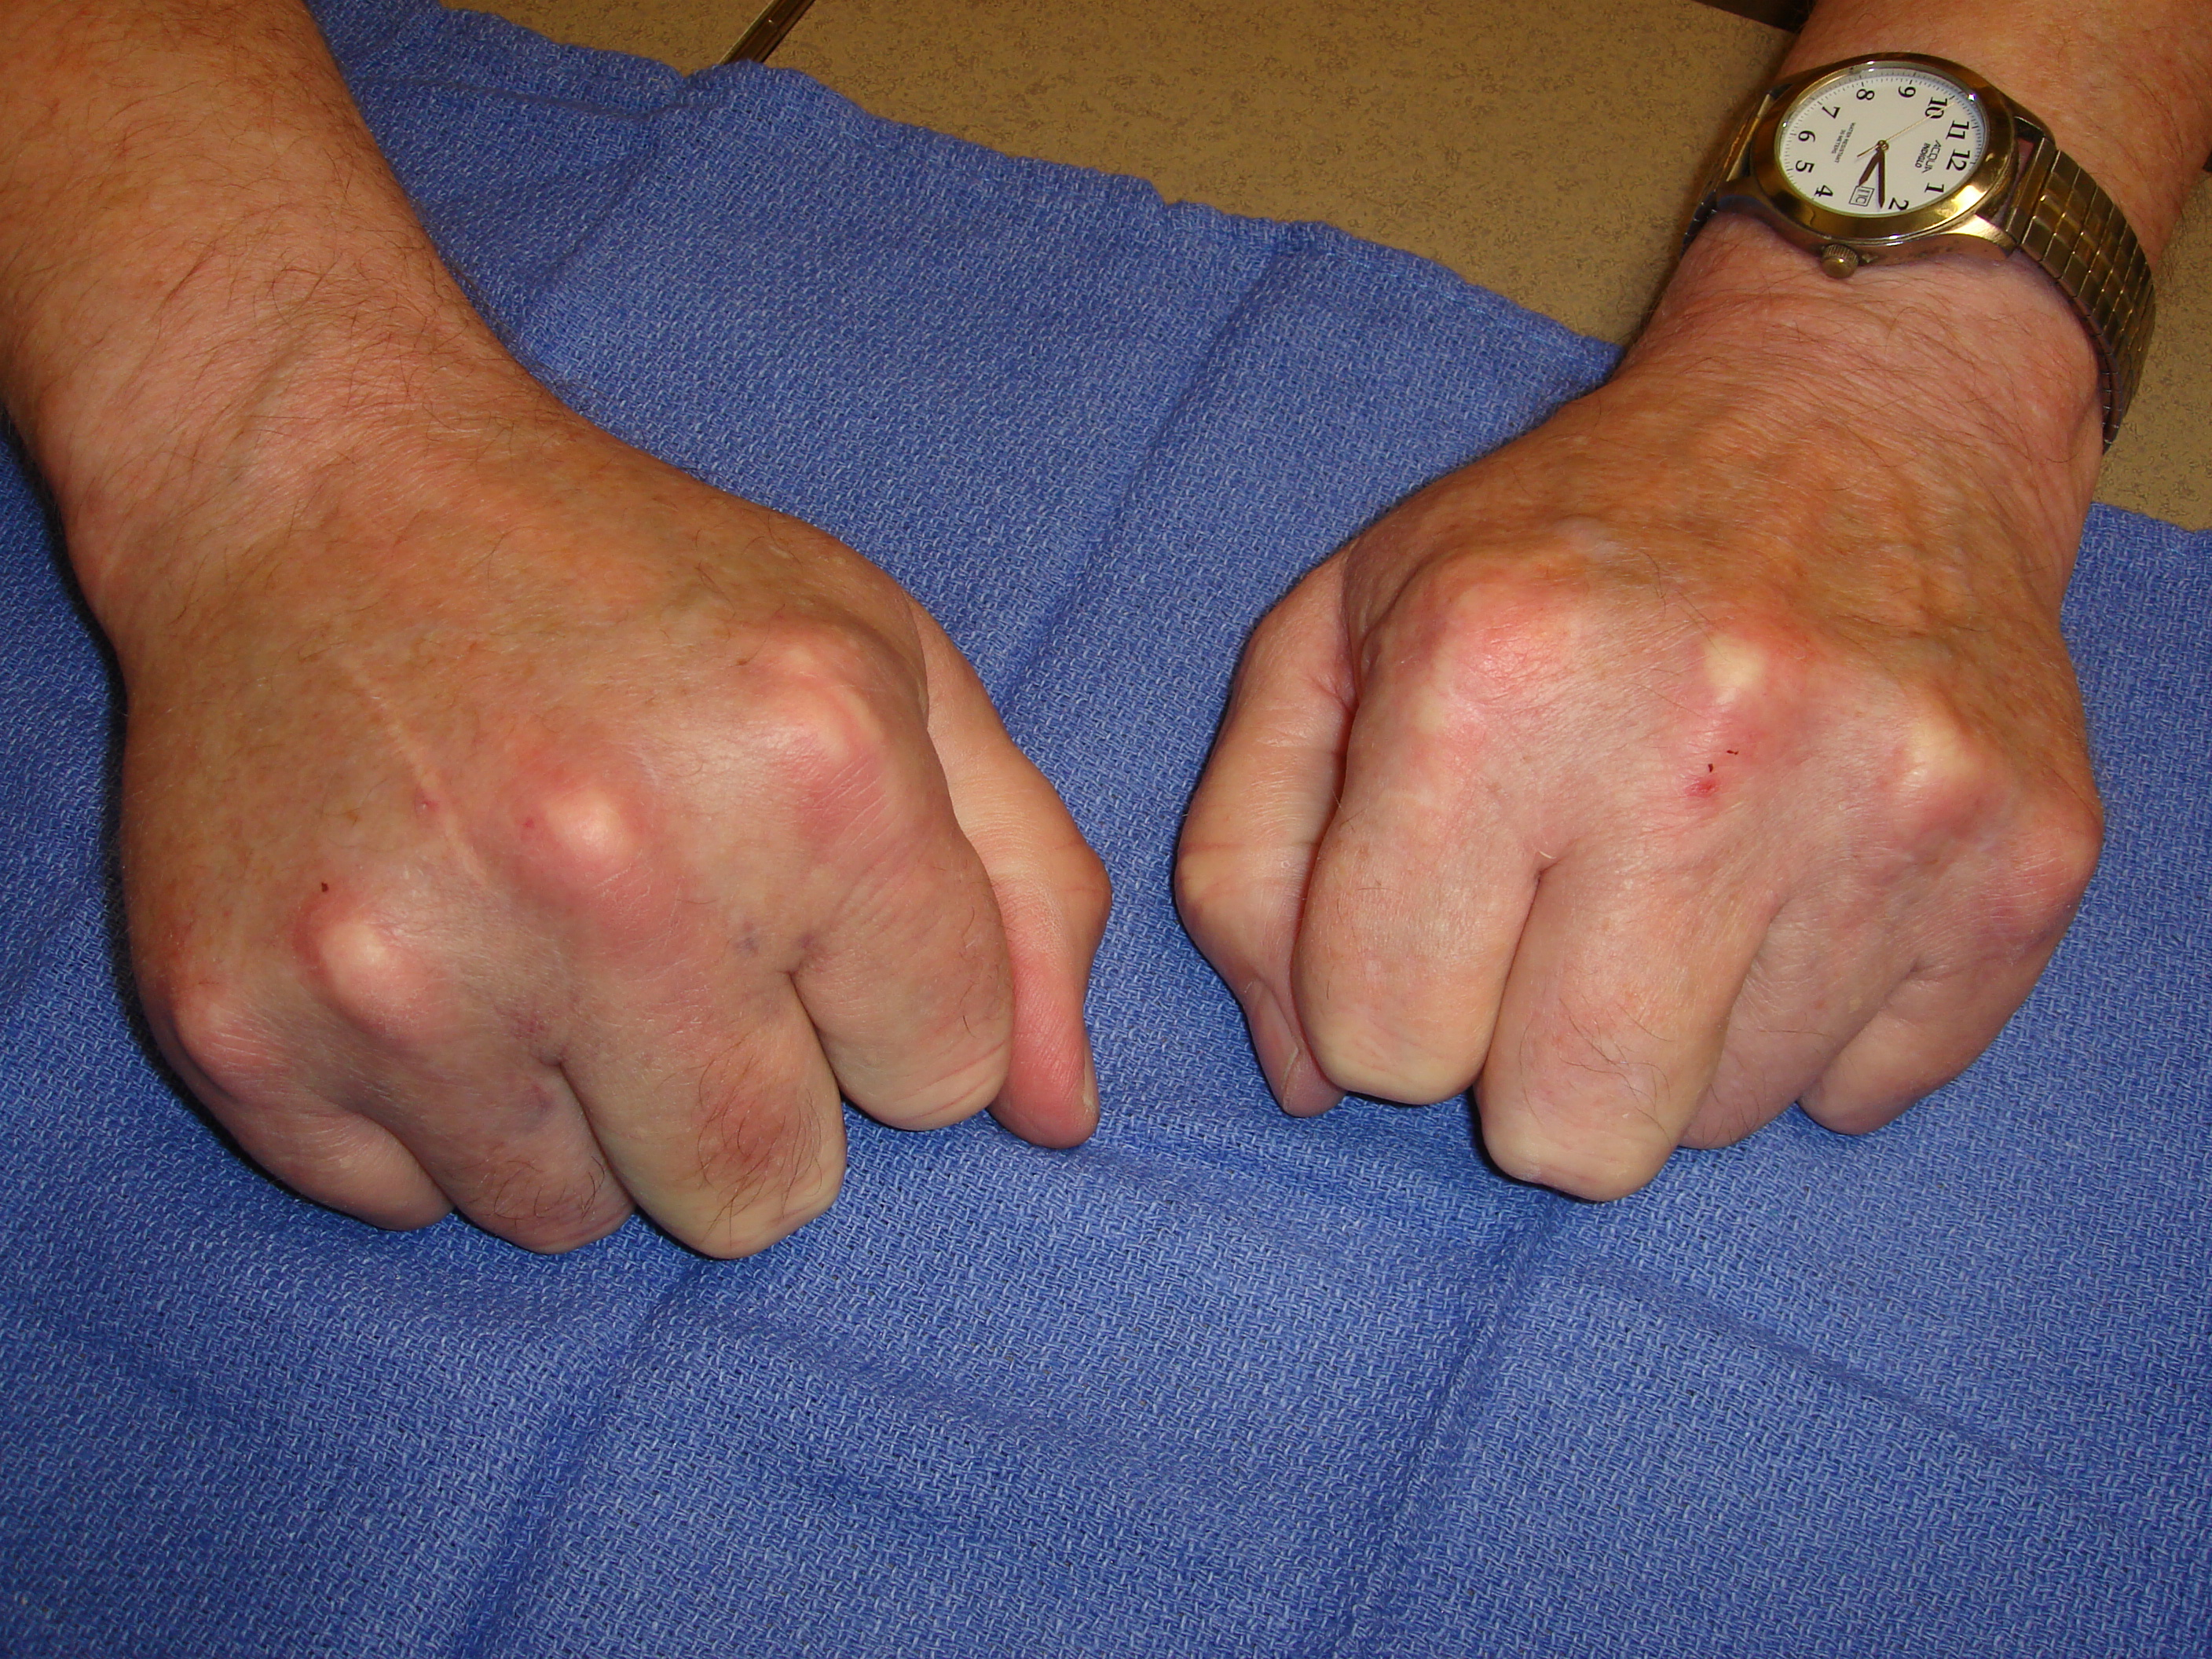 Figure 7b: At the 48-hour visit his right hand is minimally swollen; however, he also has mildly uncomfortable axillary bruising with enlarged nodes.